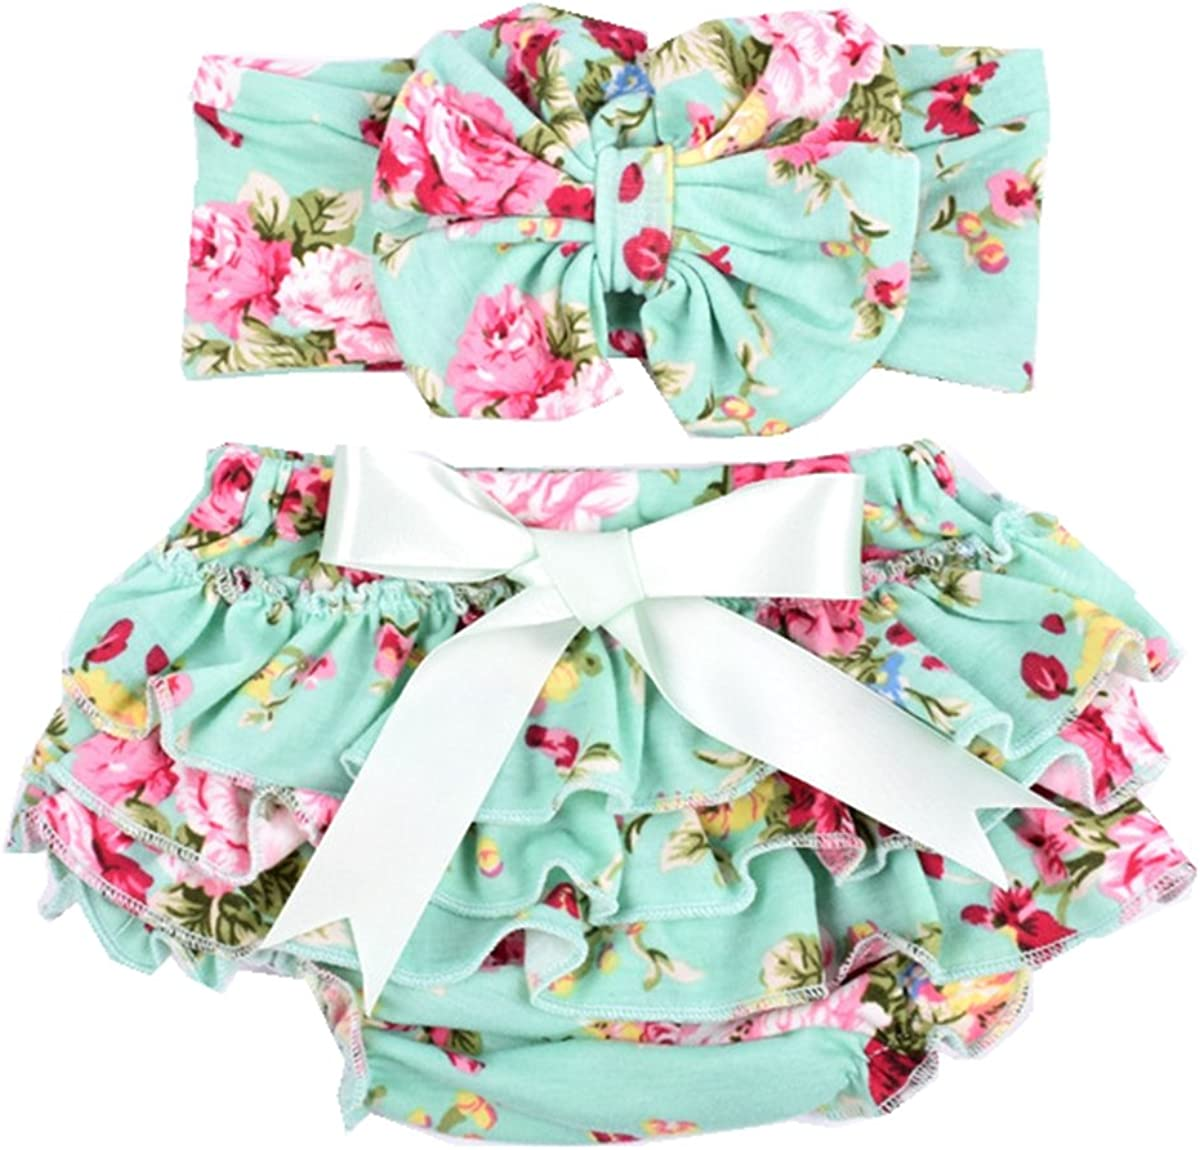 Complete Free Shipping Baby Girls Diaper Cover Outfit Cotton and Newborn H High quality new Bloomer Soft